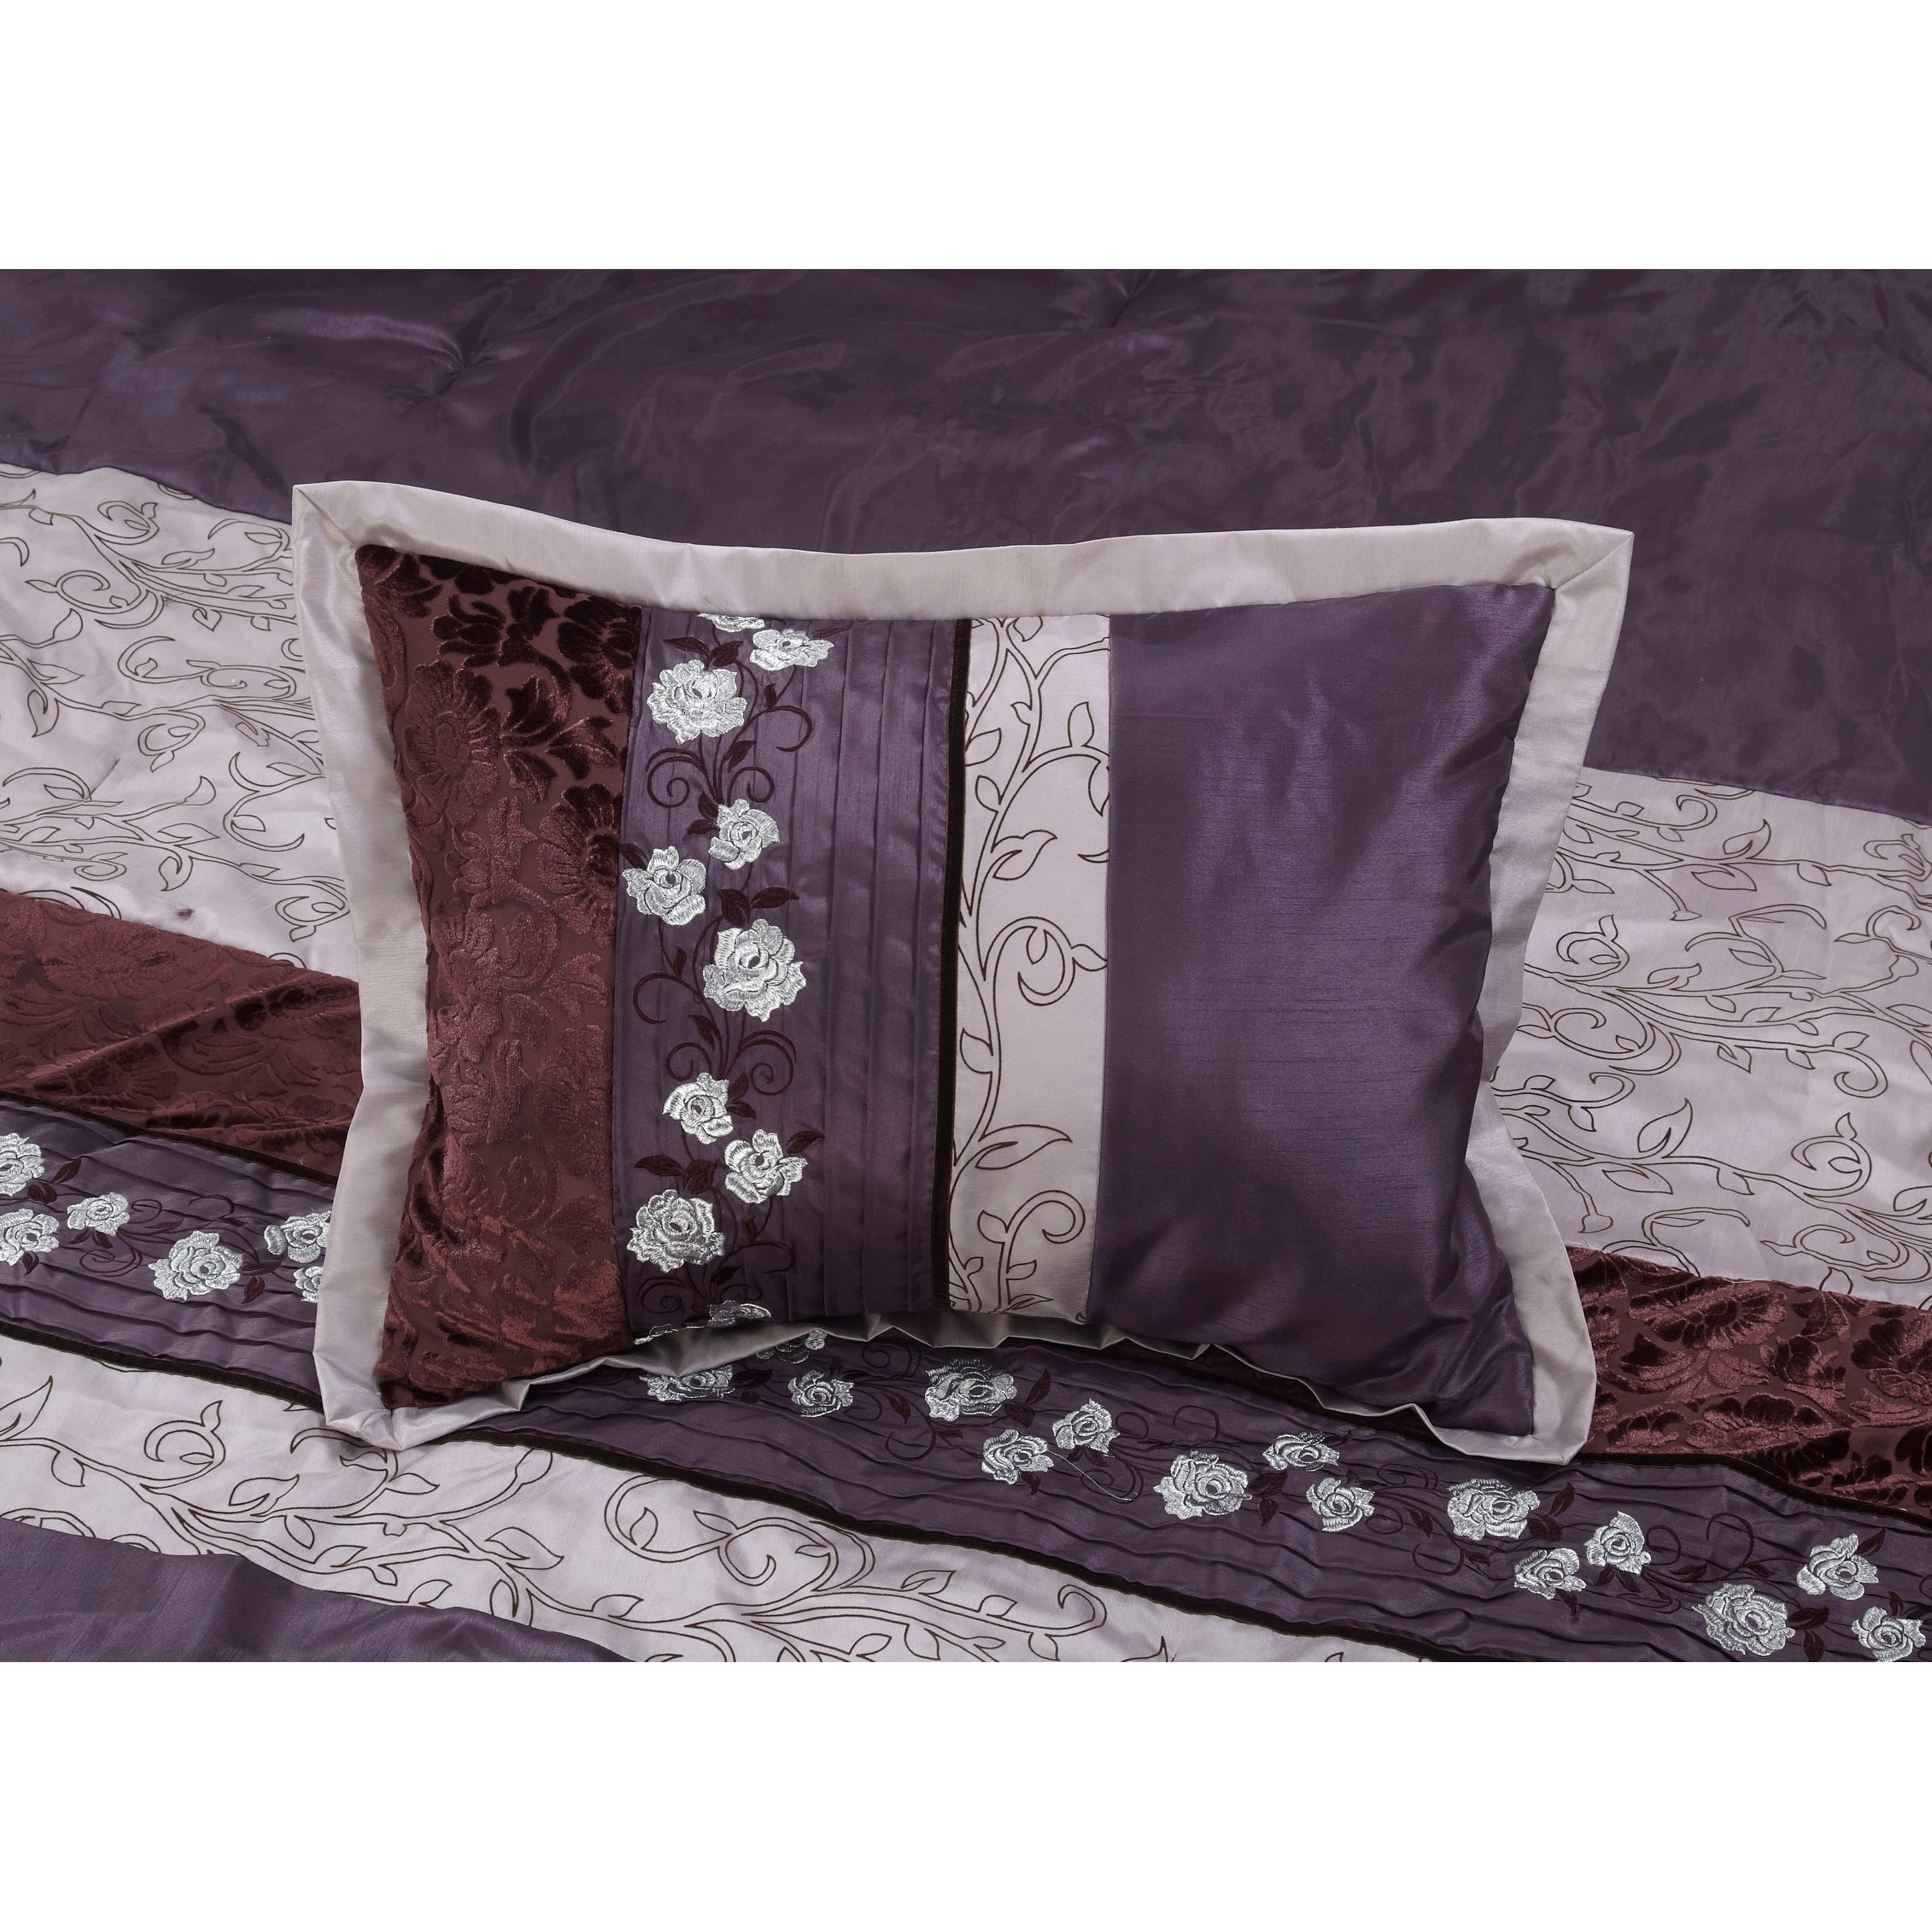 bath bedding set piece free intelligent overstock product shipping purple design mikay today comforter